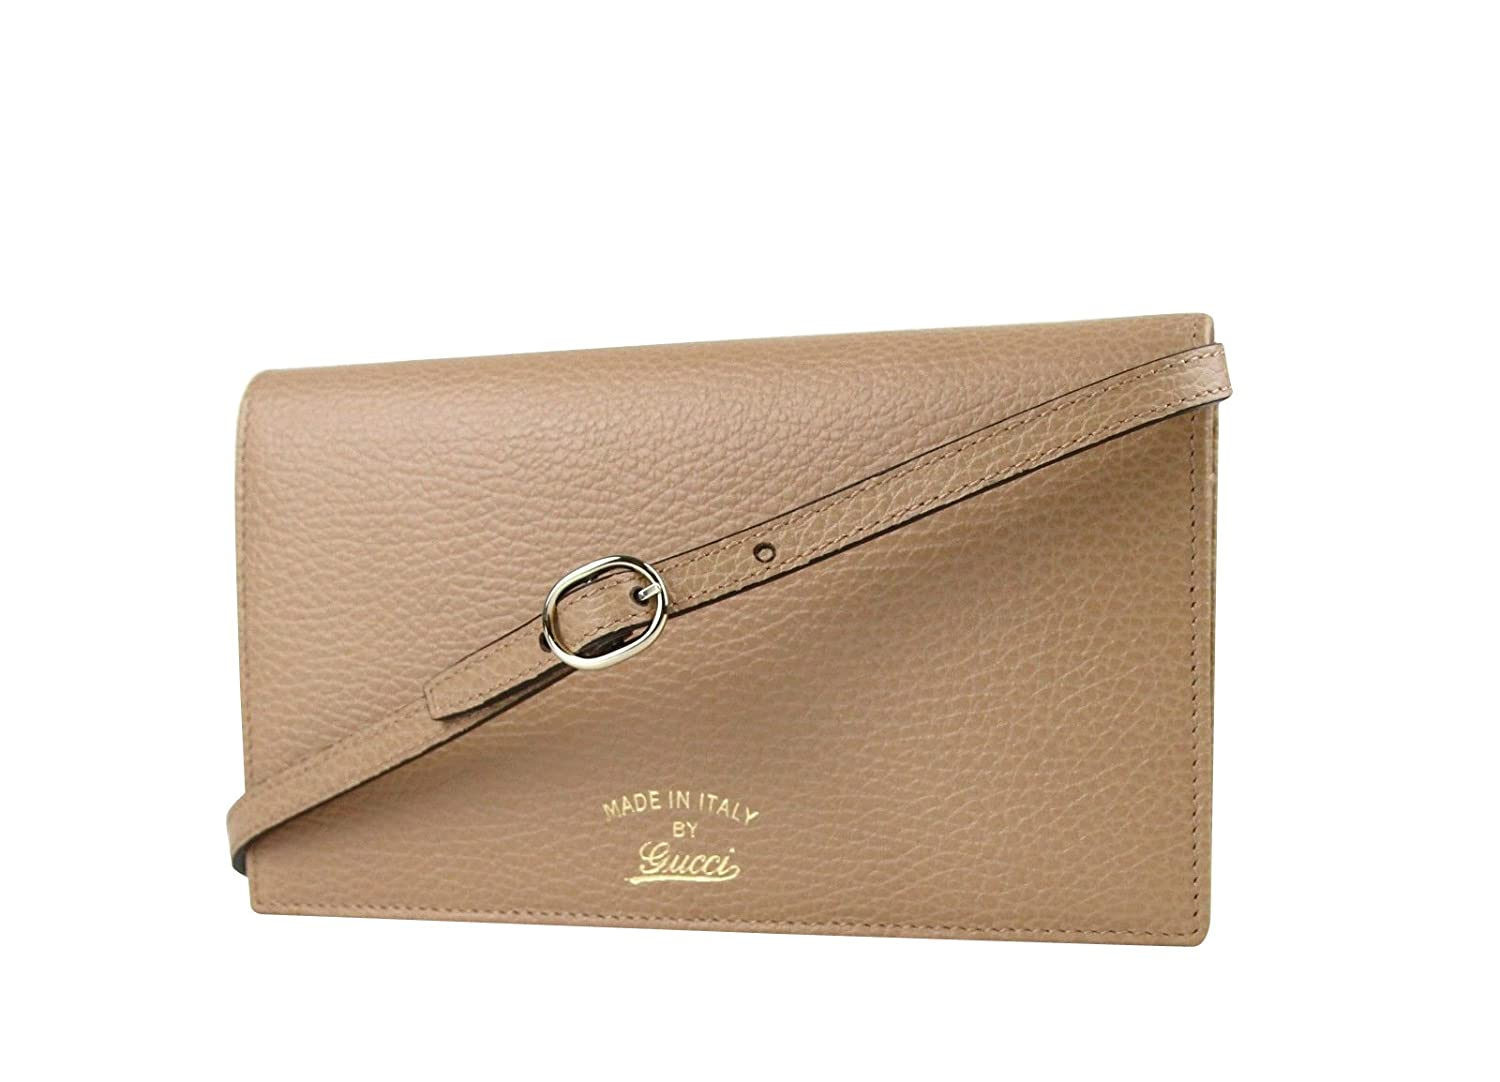 e72f45a7110 Gucci Swing Tan Leather Crossbody Clutch Wallet 368231 2762 at Amazon  Women s Clothing store